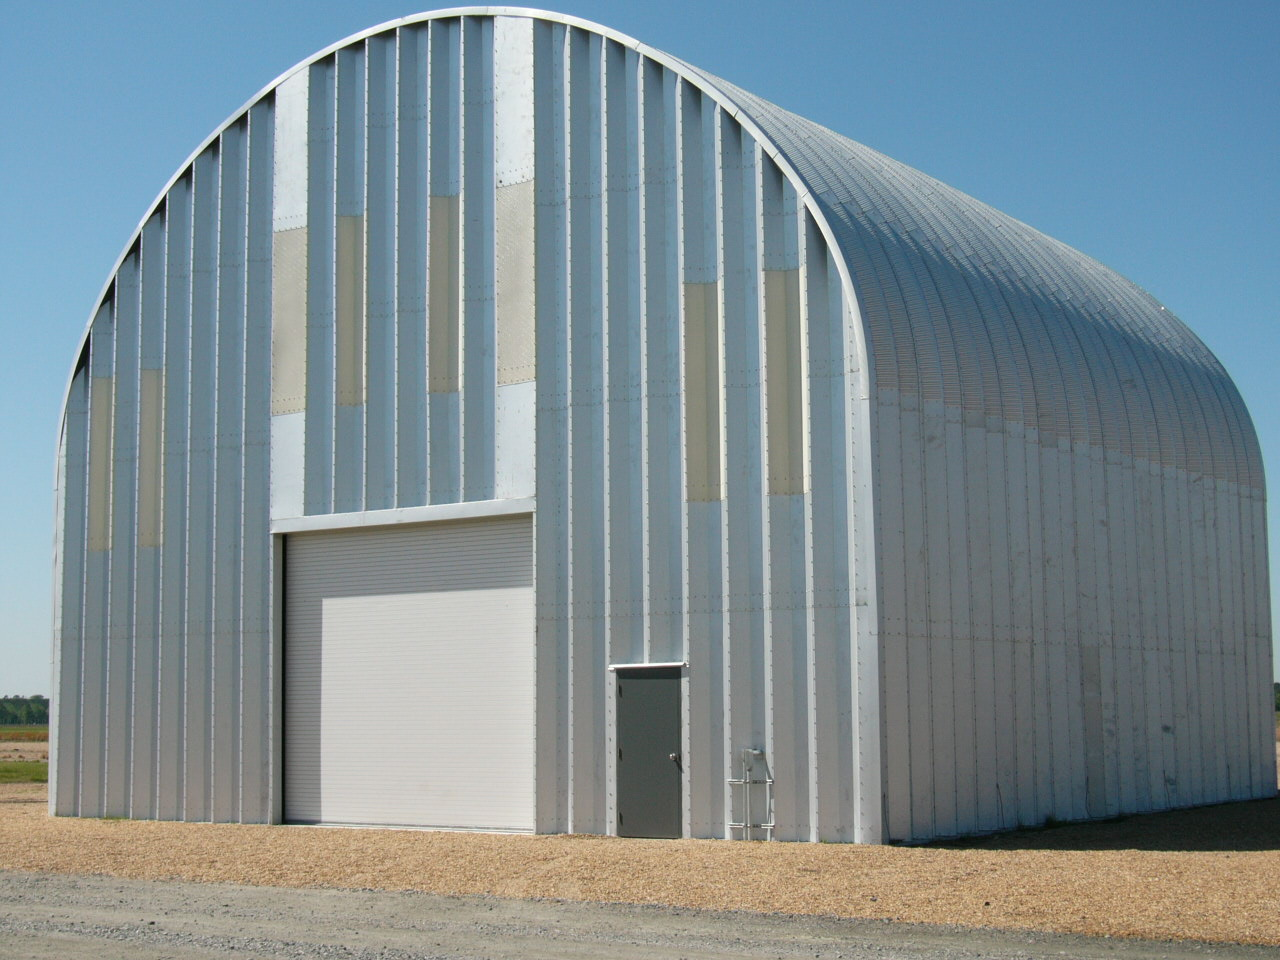 Donn steel building prices 8x10x12x14x16x18x20x22x24 for Steel shed house